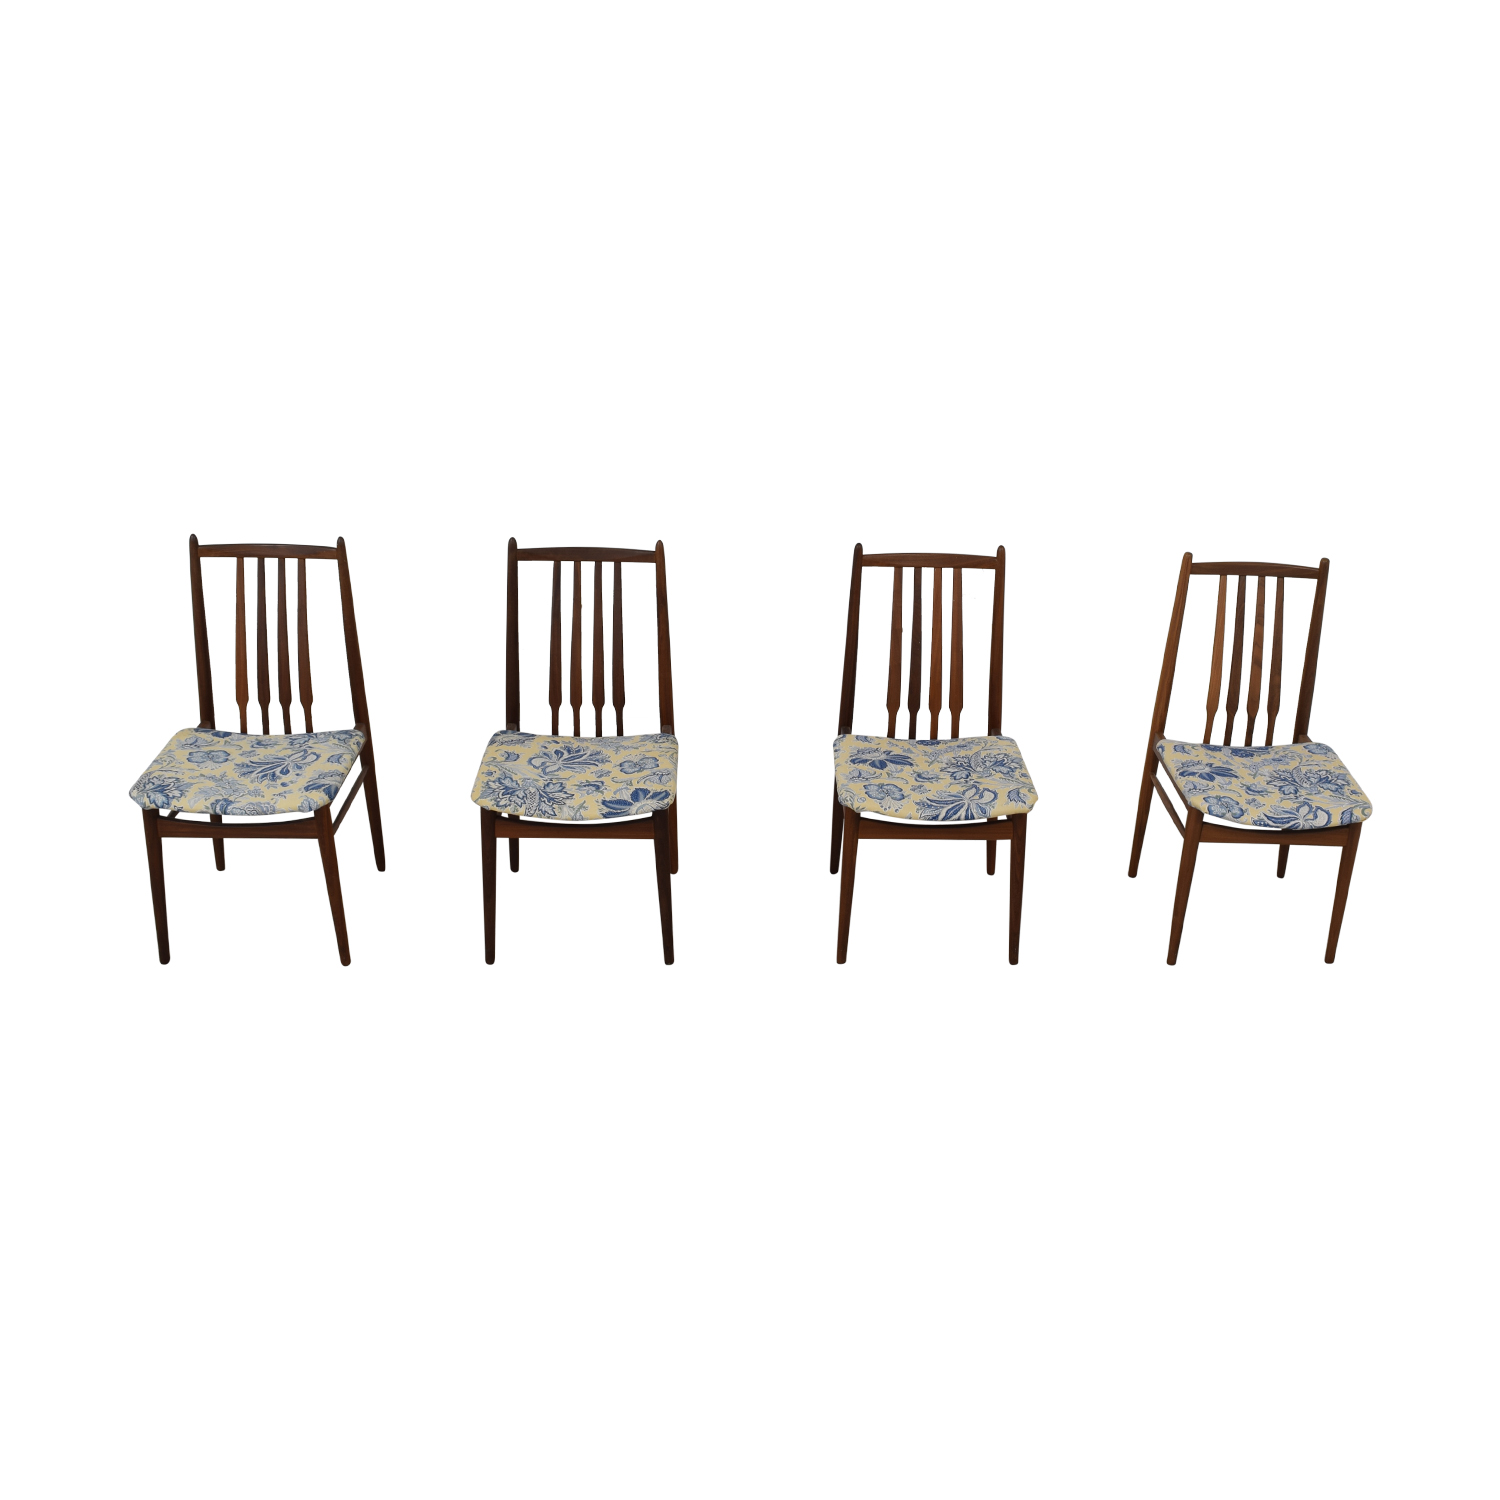 Scandinavian Wooden Chairs nyc